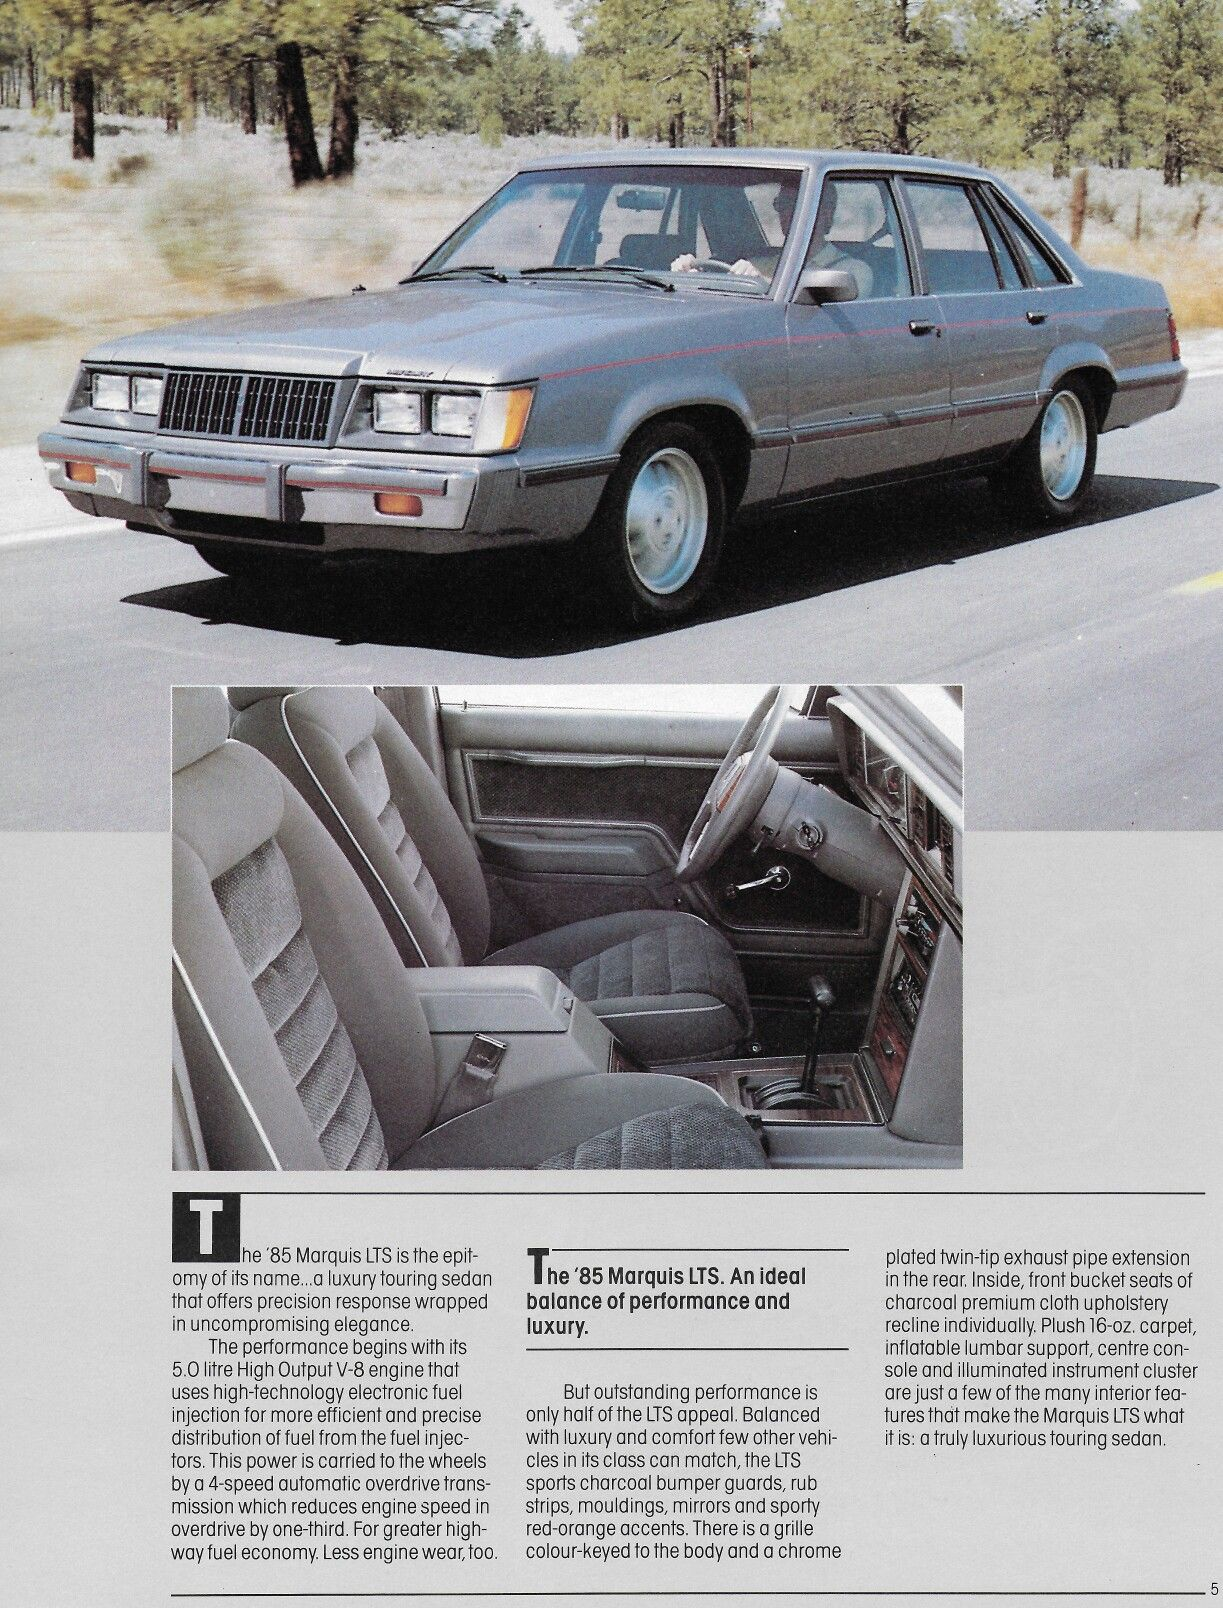 Mercury Marquis LTS 1985 | Old Car Adds | Ford lincoln